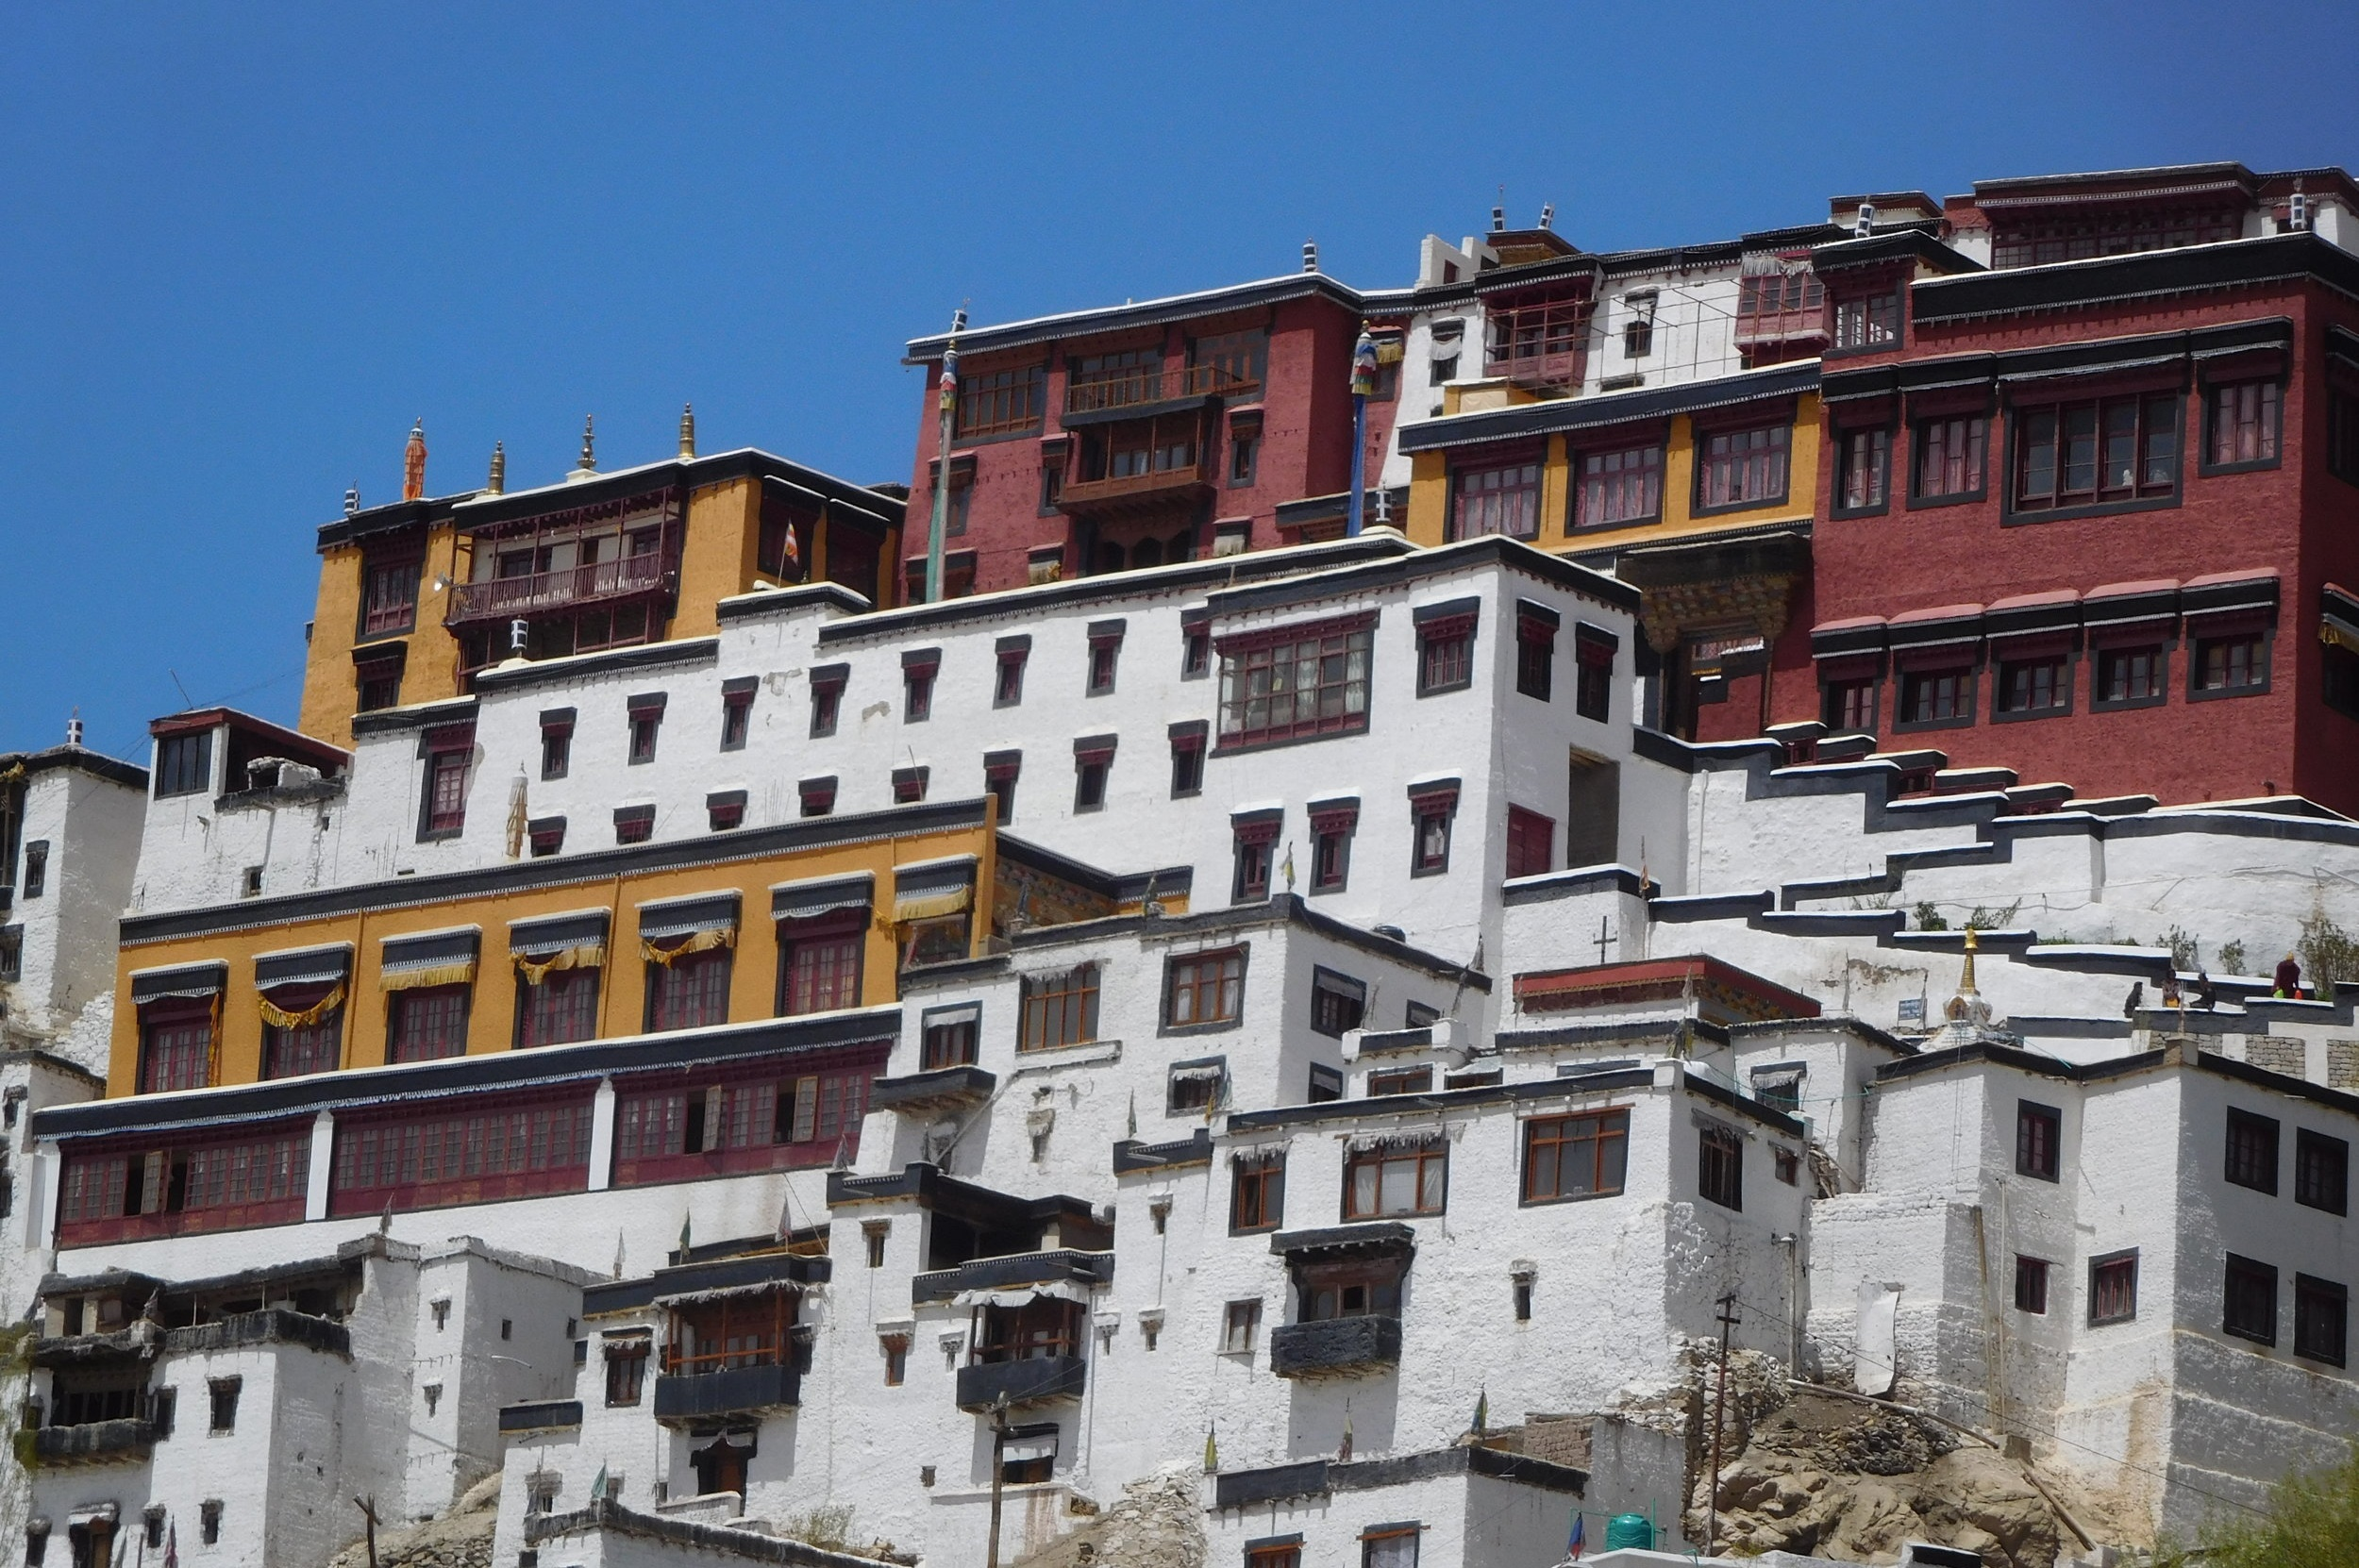 Thiksey Gompa - Ladakh's mini Potala Palace, favoured by the Dalai Lama as a site for giving teachings each summer.